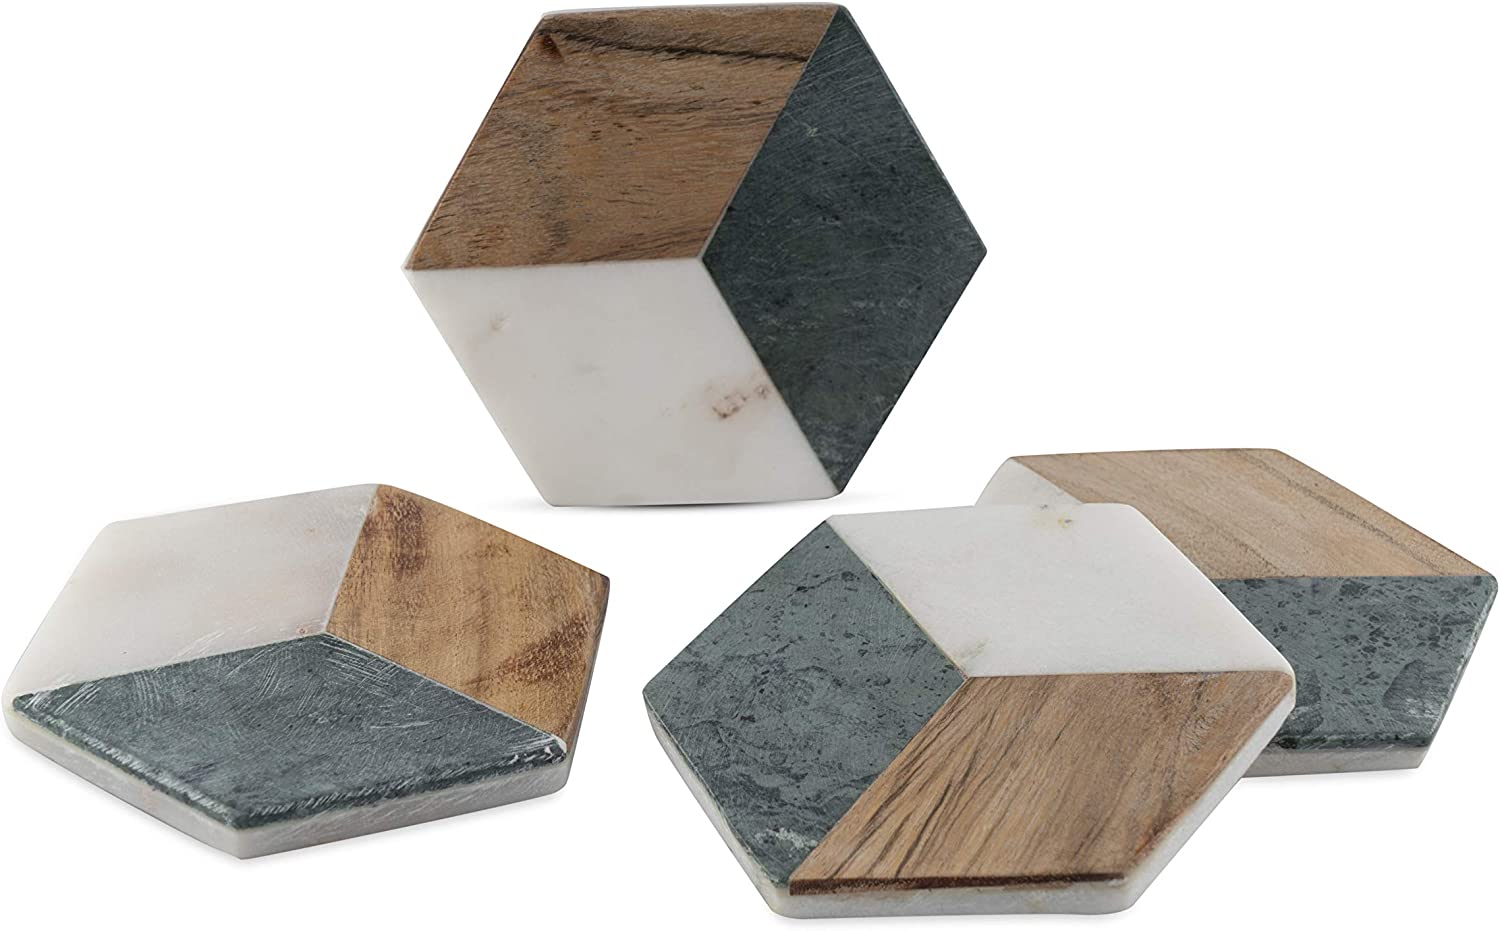 GoCraft Hexagon Geometric Coasters   Handcrafted Geometric Coasters with Green for your Drinks, Beverages & Wine/Bar Glasses   Green Marble & Wood Inlay on White Marble Base (Set of 4)